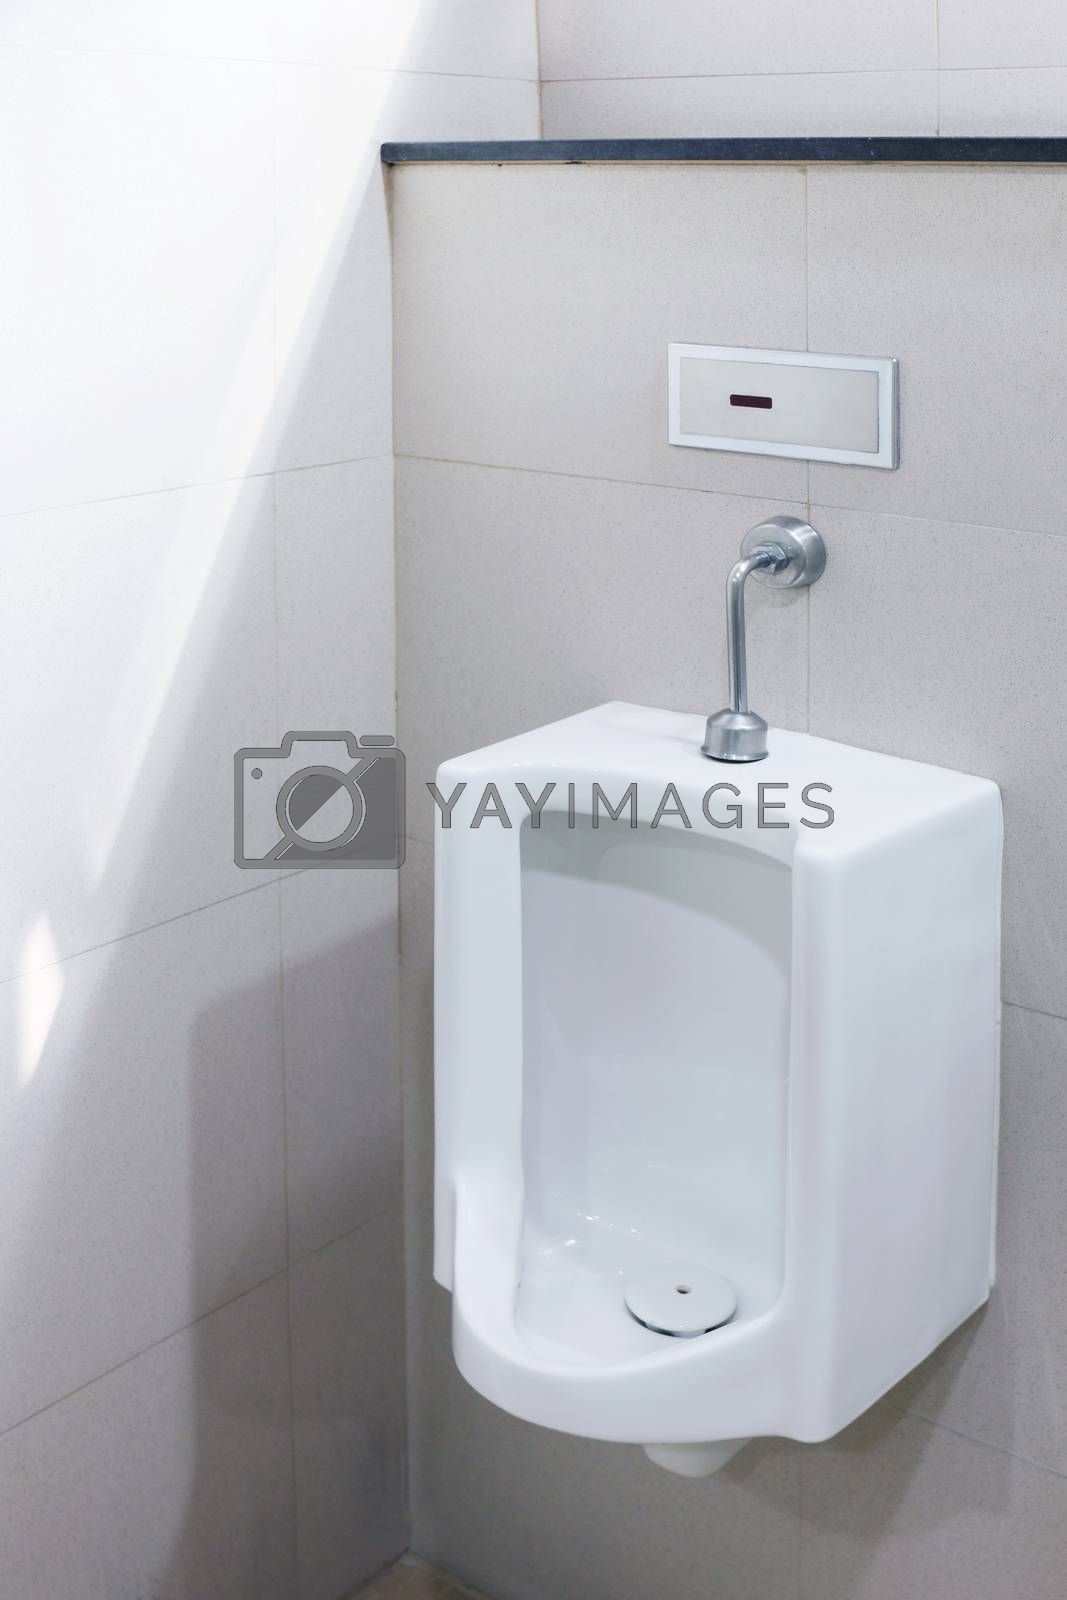 Royalty free image of Urinals for men outdoor toilet, Urinals white ceramic at bathroom public, close-up white urinals by cgdeaw